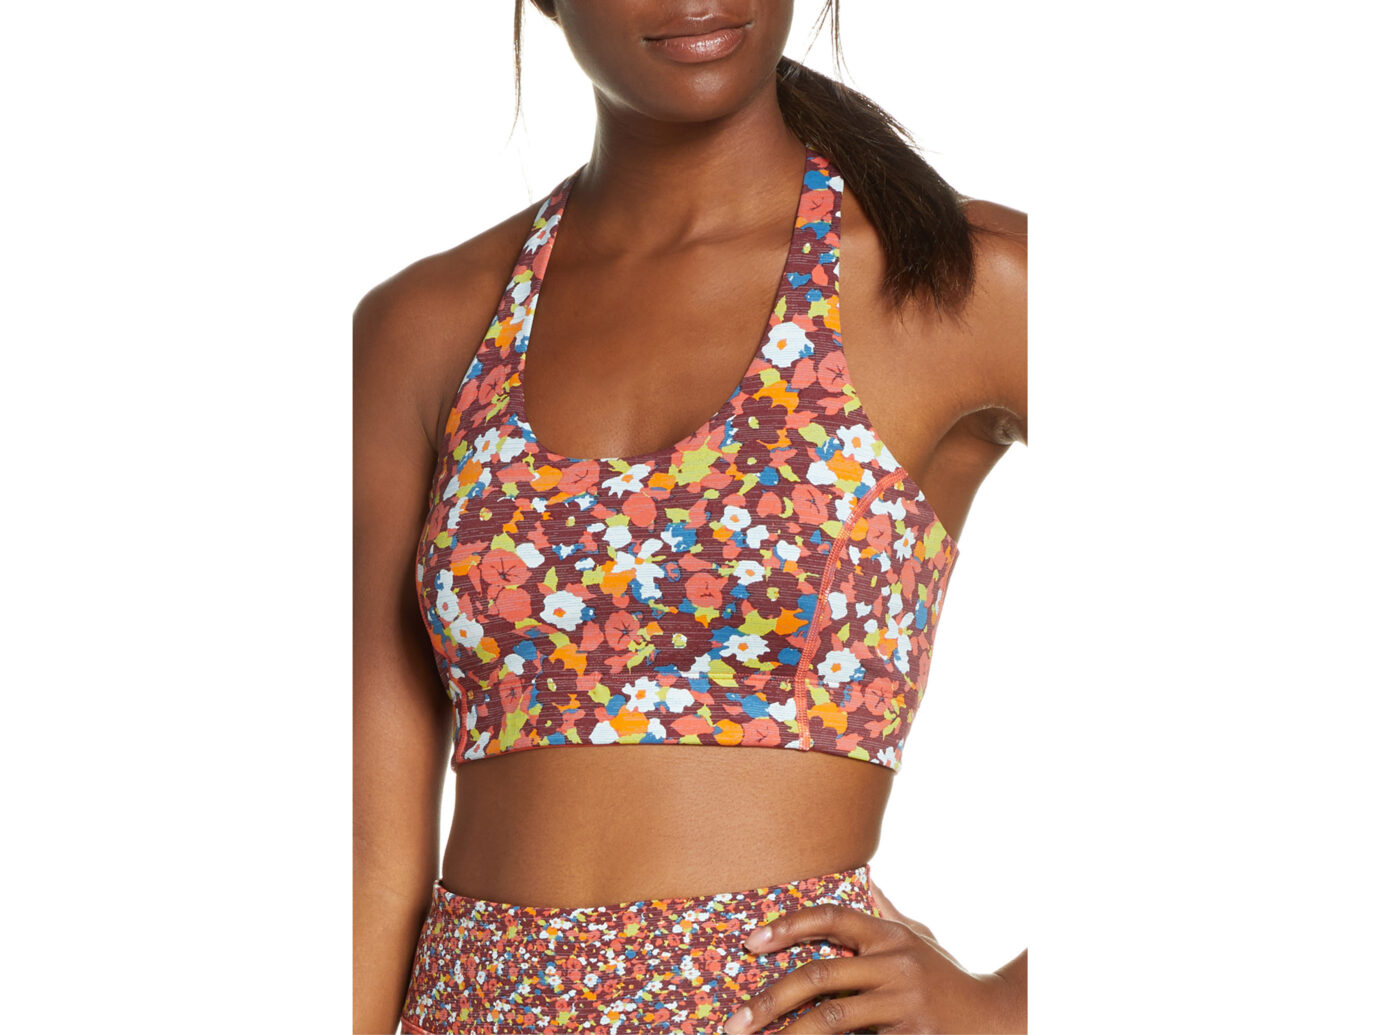 Outdoor Voices Doing Things Sports Bra